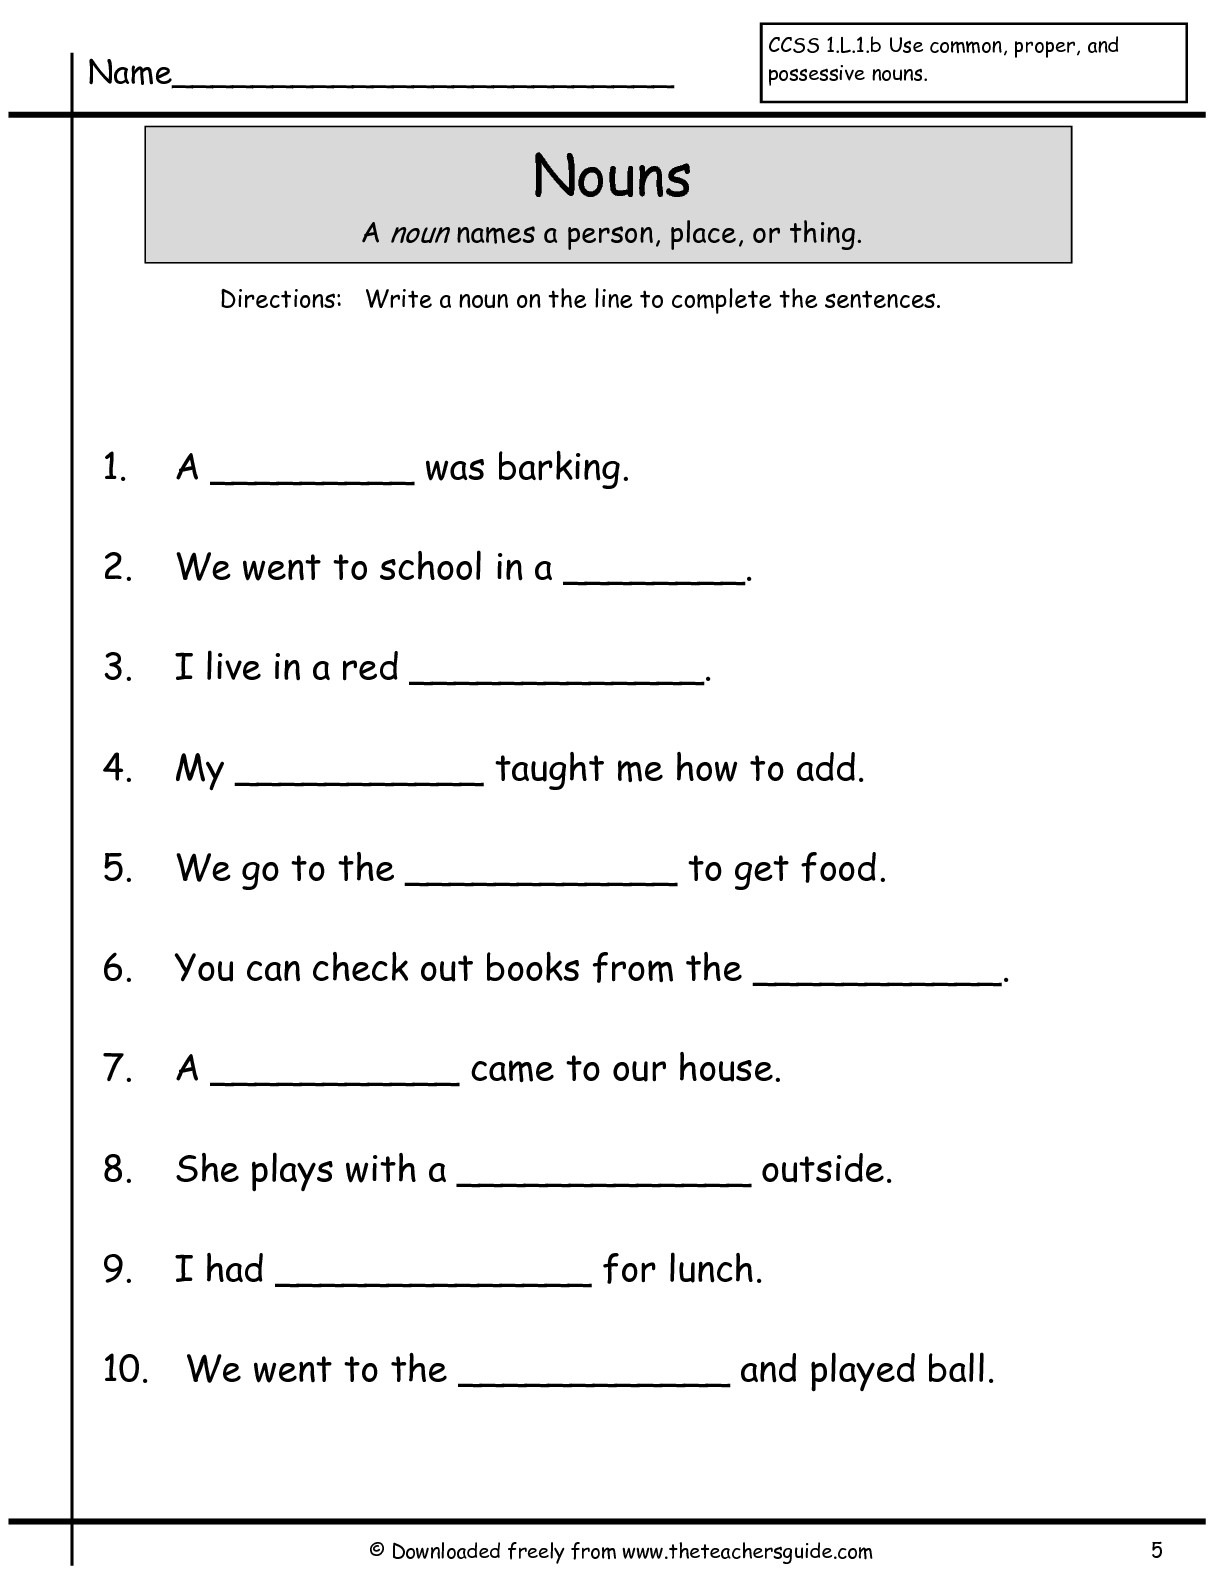 15 Best Images Of Reading Worksheets Grammar Test